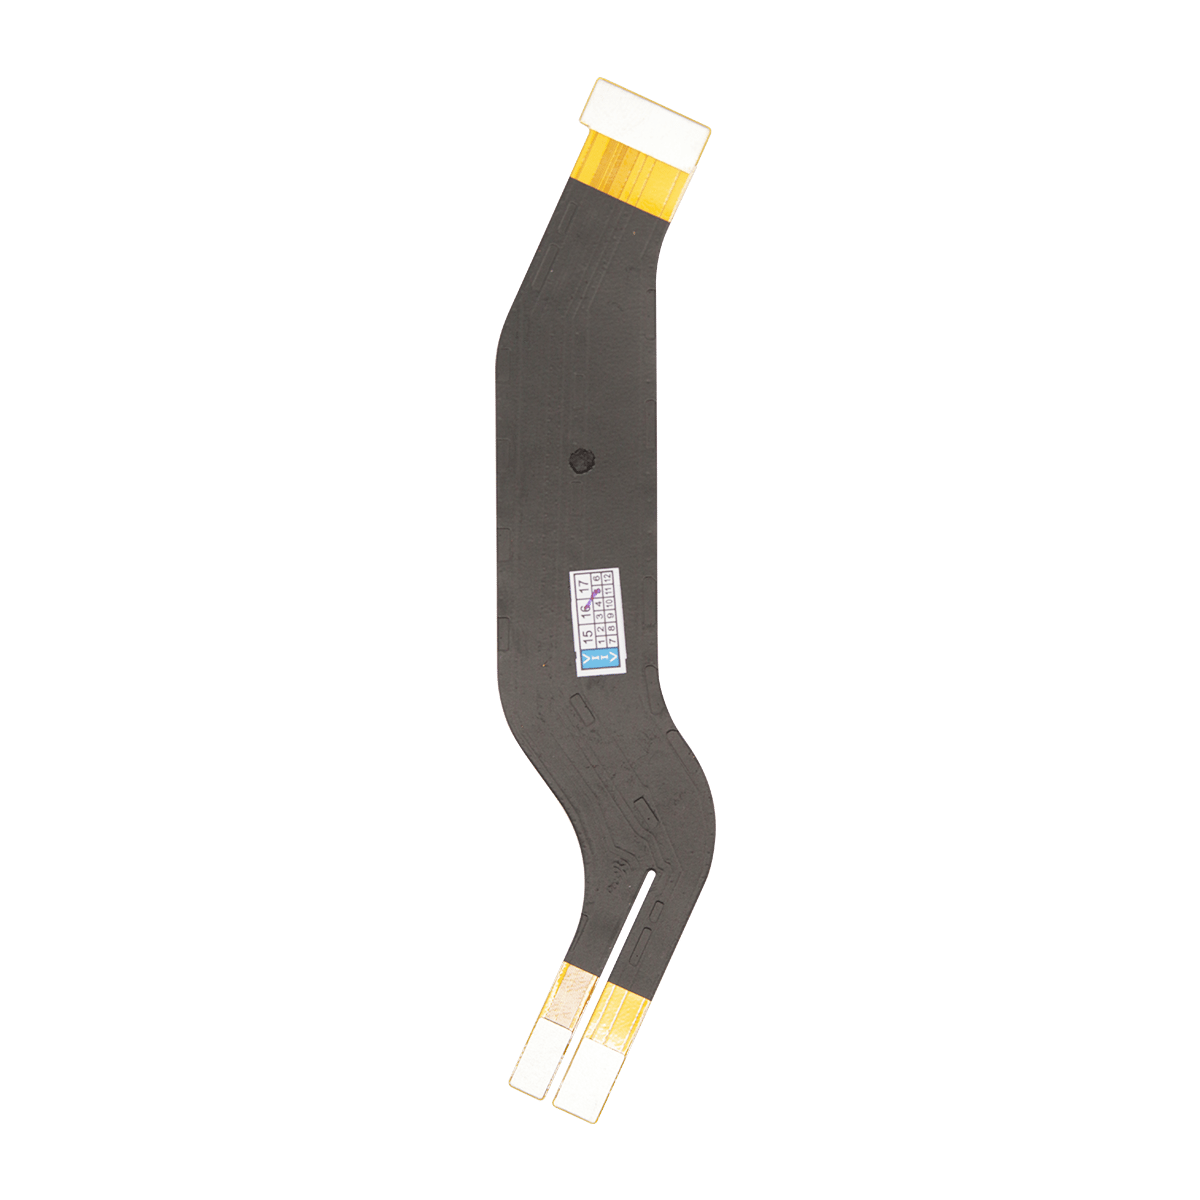 Huawei Nexus 6P Interconnect Cable Replacement